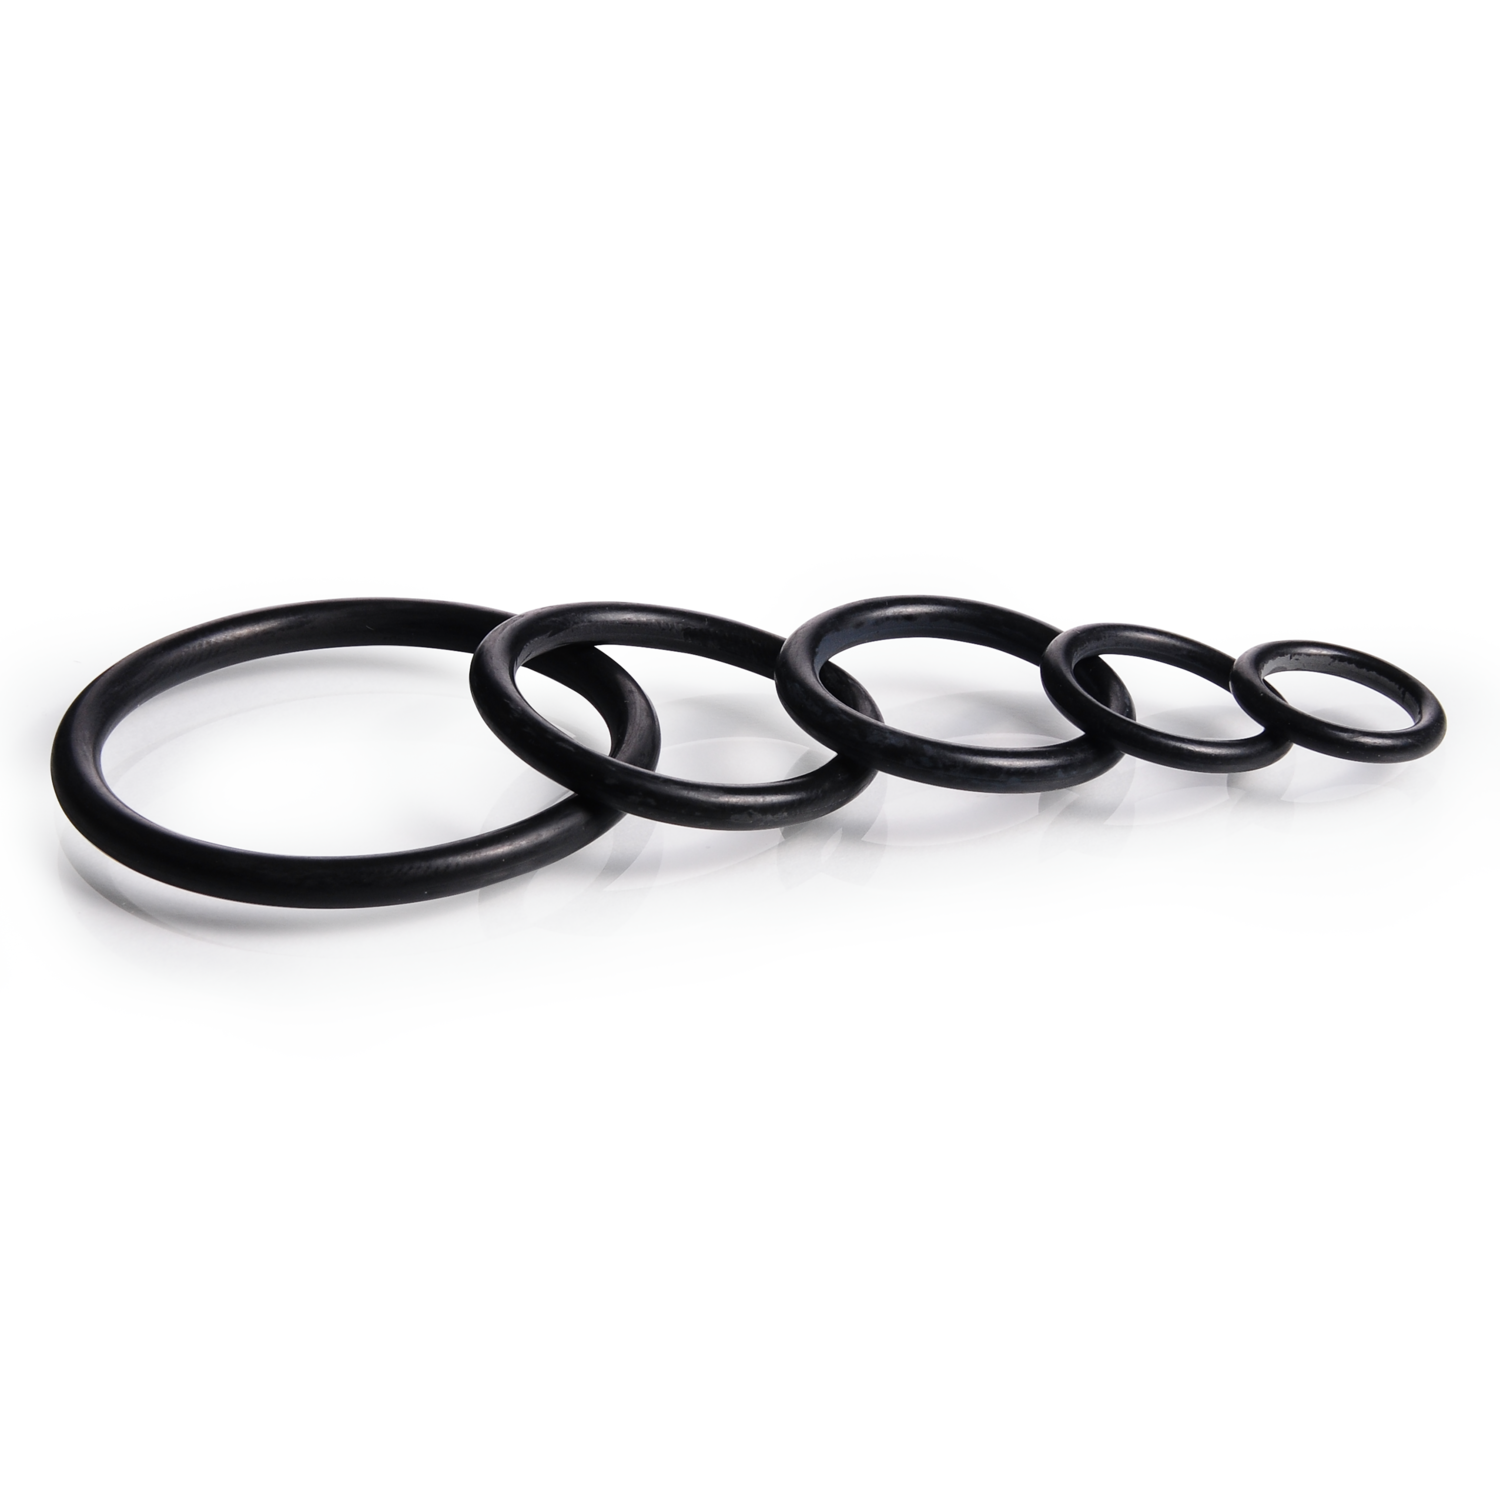 O-Ring for DURAN® Safety Joints, NS 45